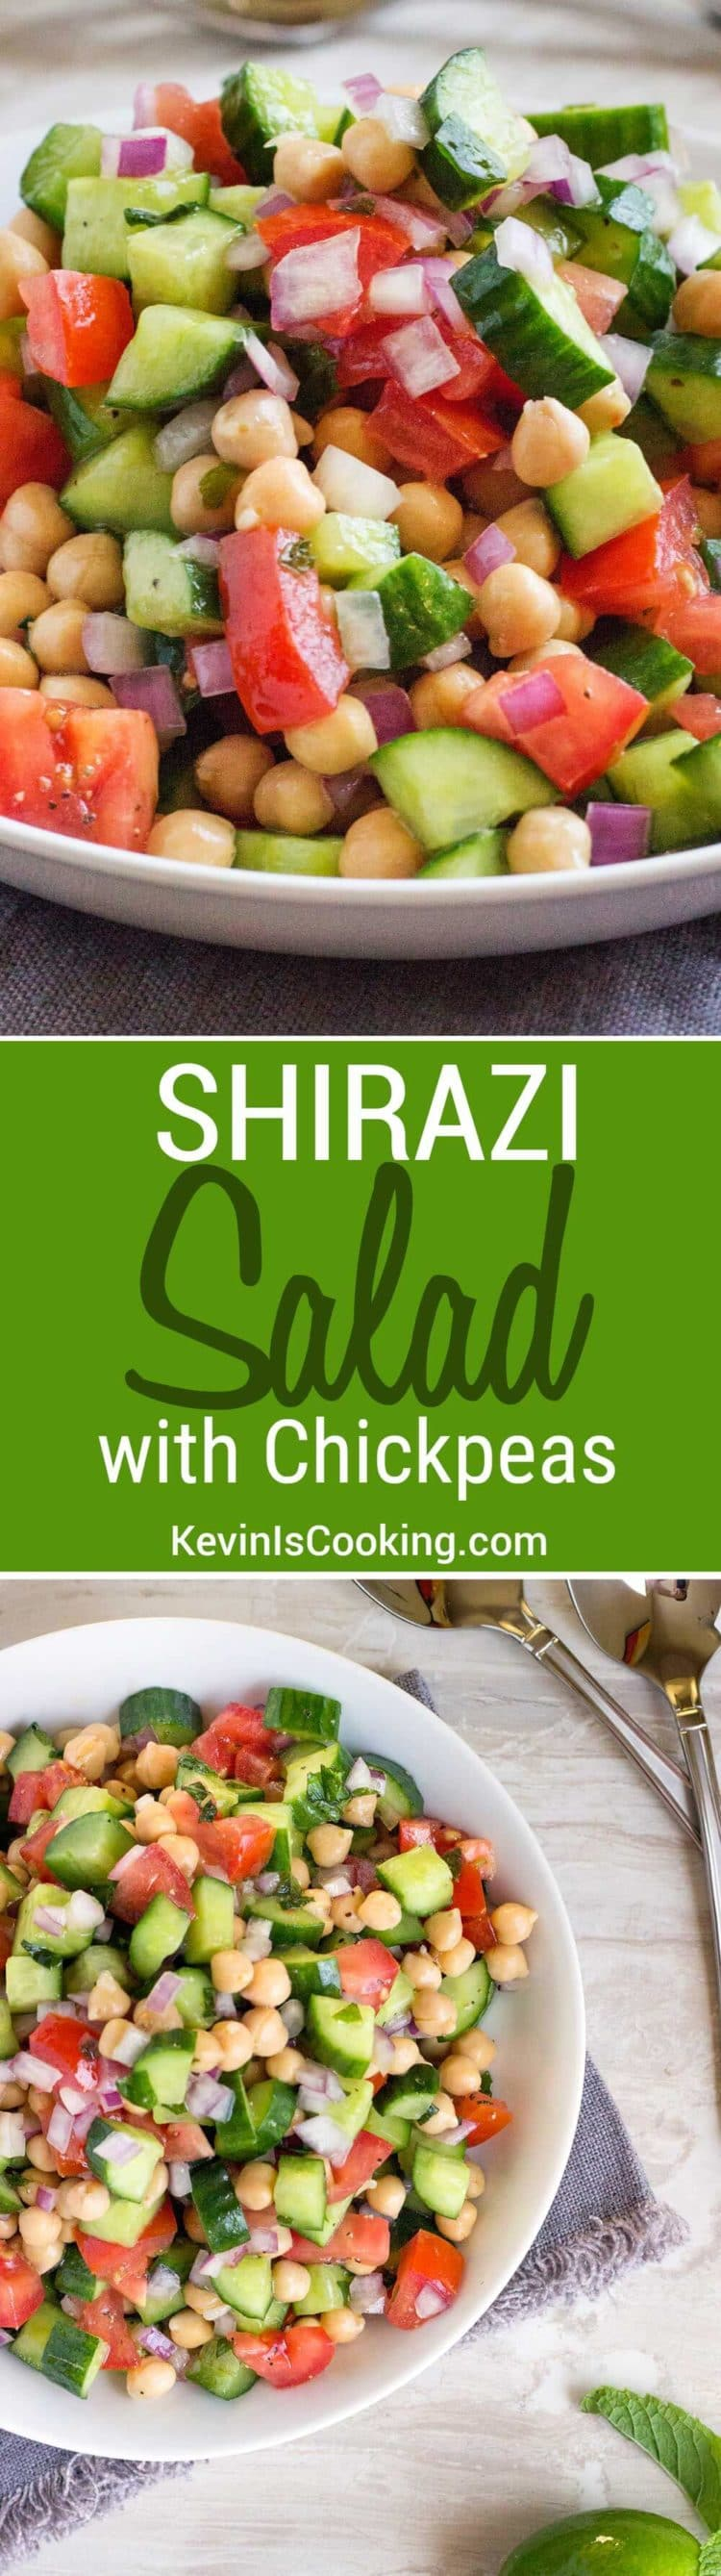 The Shirazi Salad is a refreshing, healthy and simple salad of tomato, cucumber, citrus and herbs. Persian in origin, a perfect side dish or on it's own.